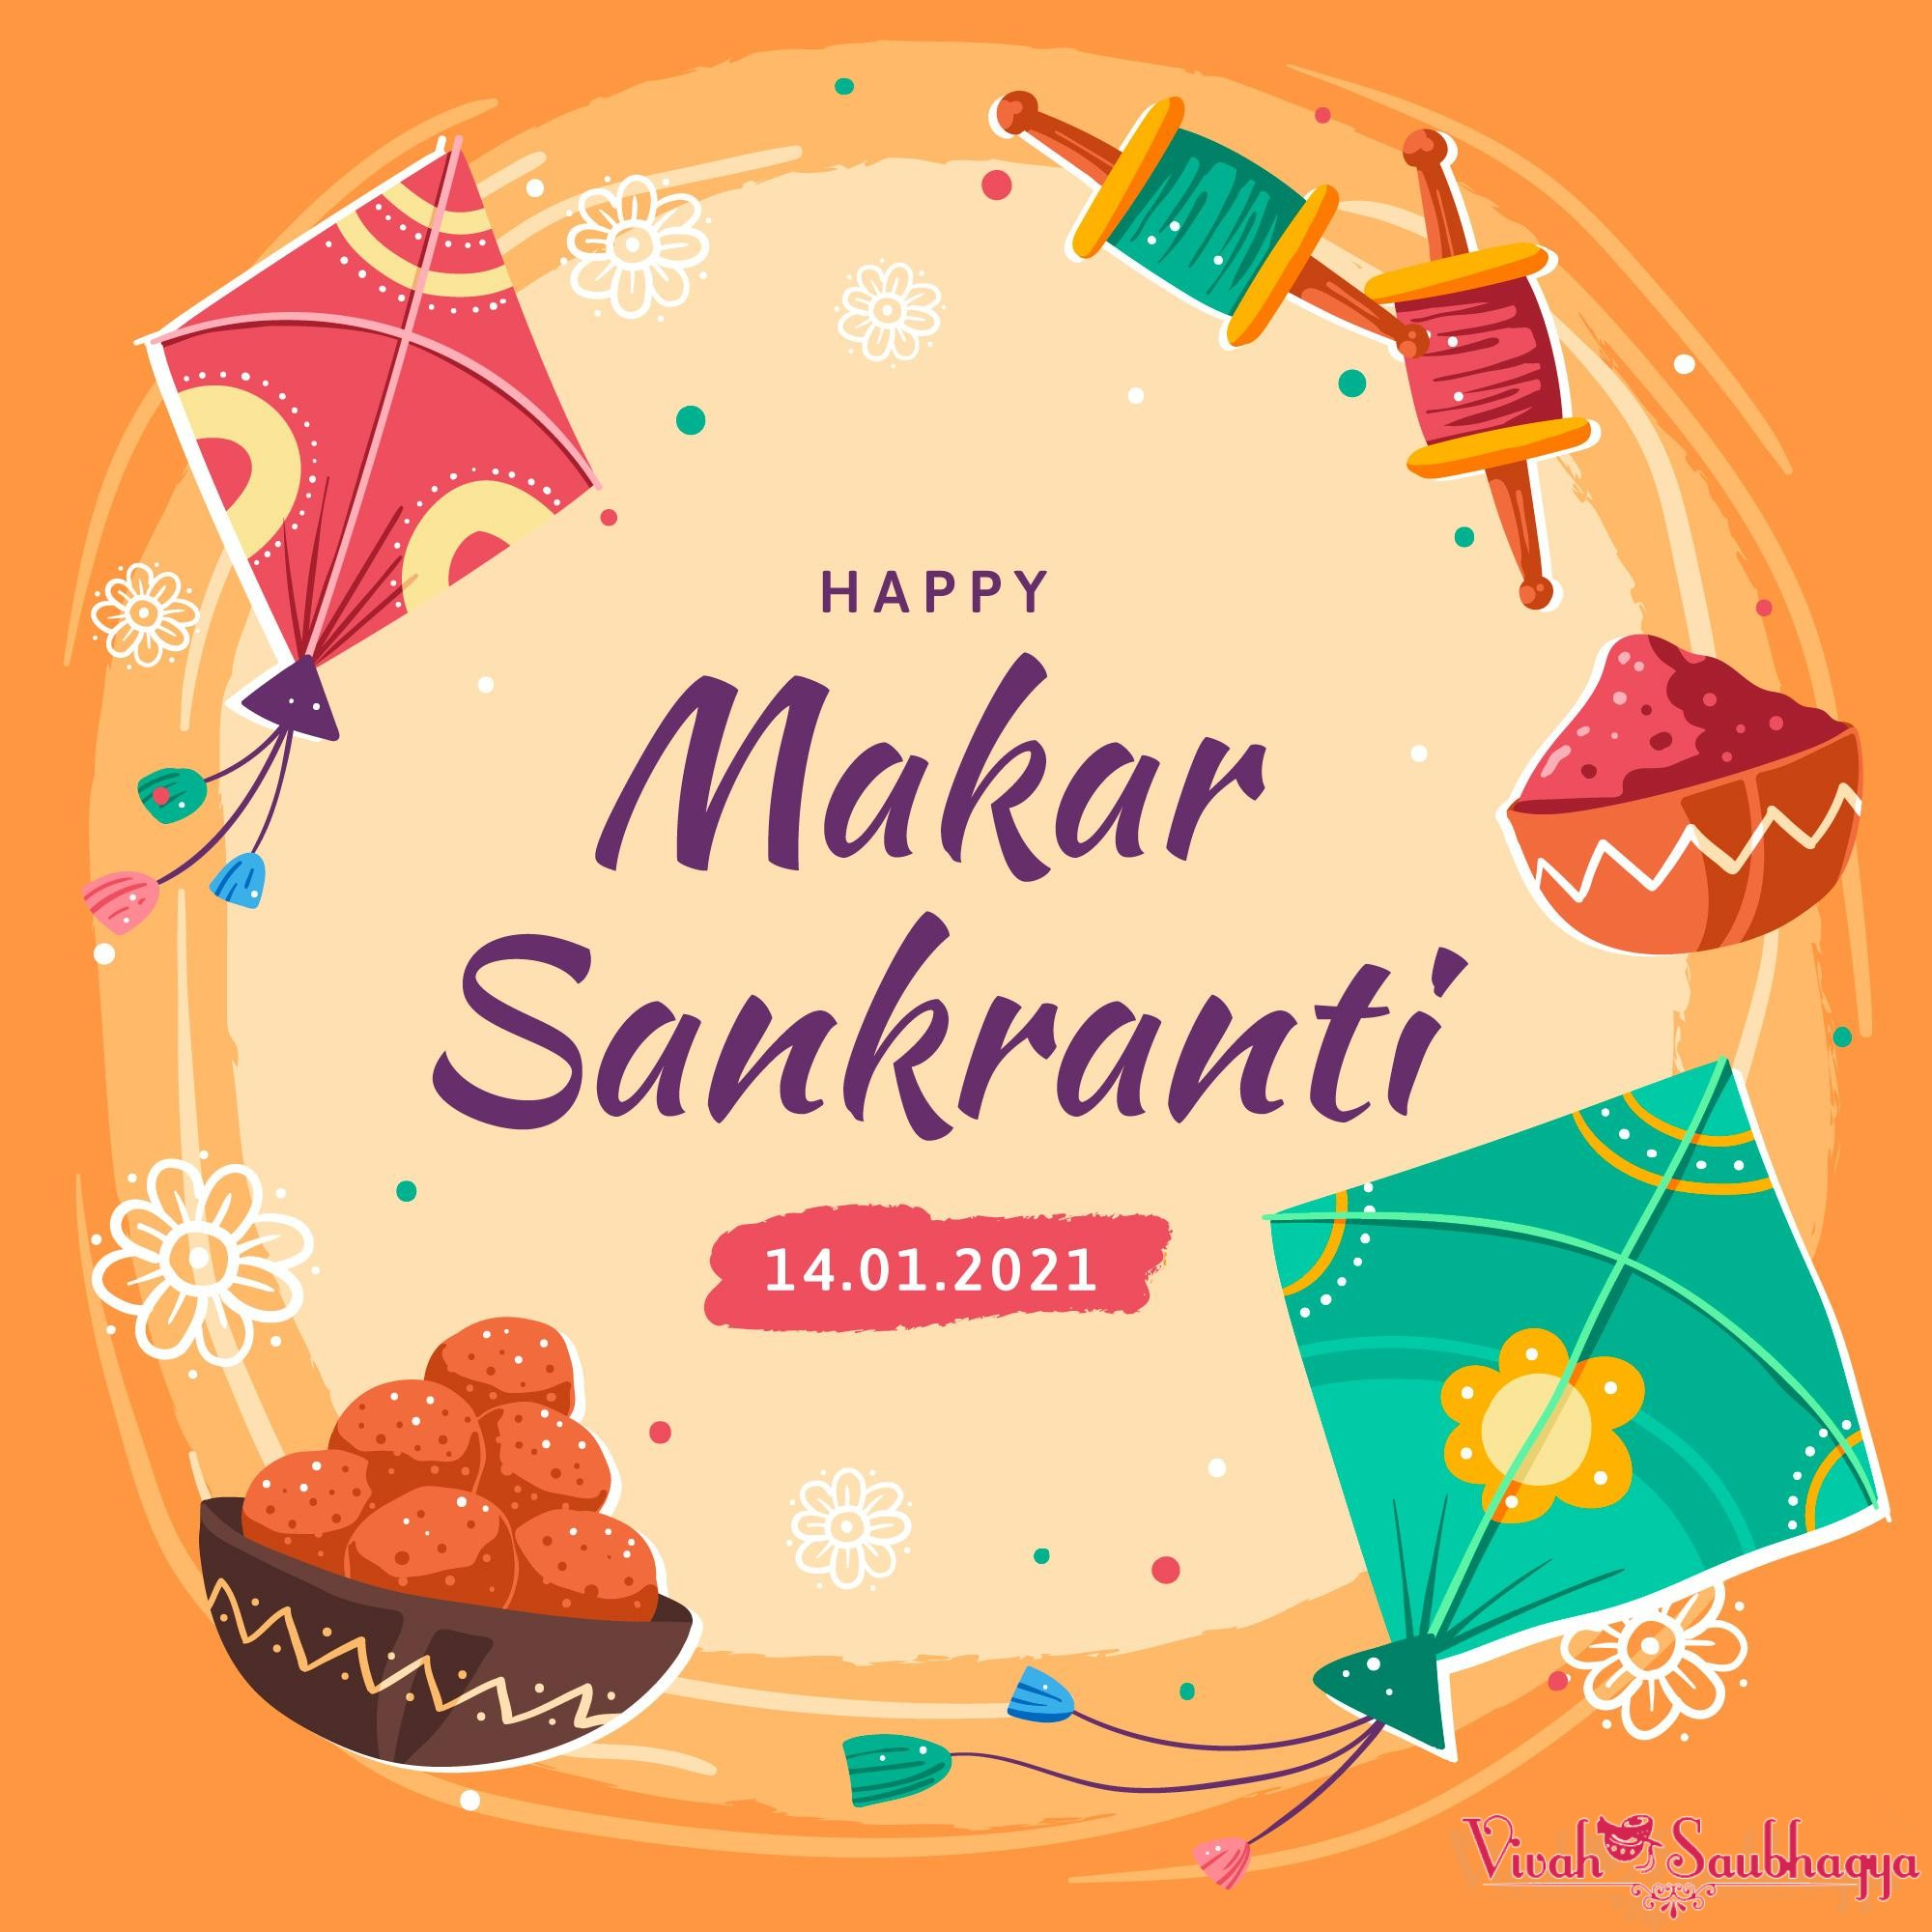 Happy Makar Sankranti – Healthy Beginning To 2021, festival of kites